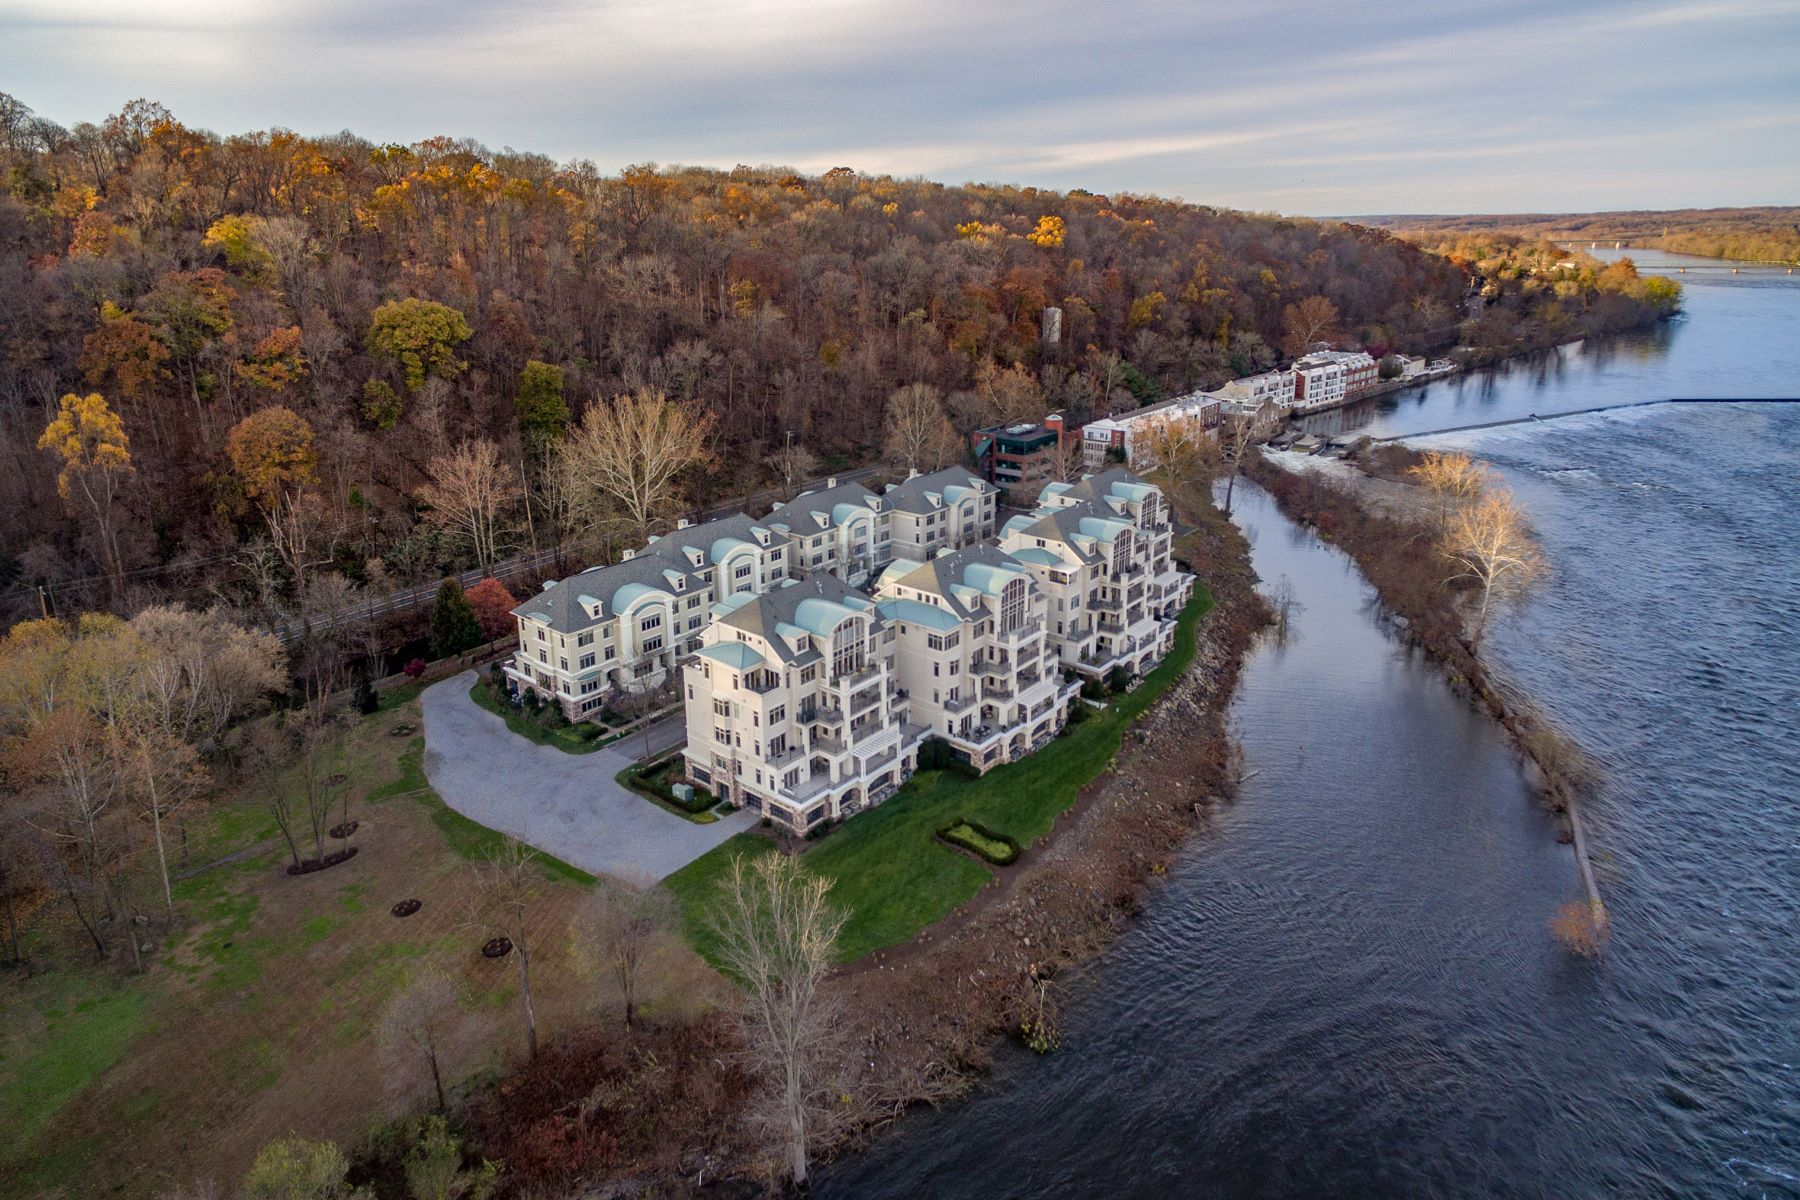 Condominium for Sale at 506 Waterview Pl #506 506 WATERVIEW PL #506 506, New Hope, Pennsylvania 18938 United States